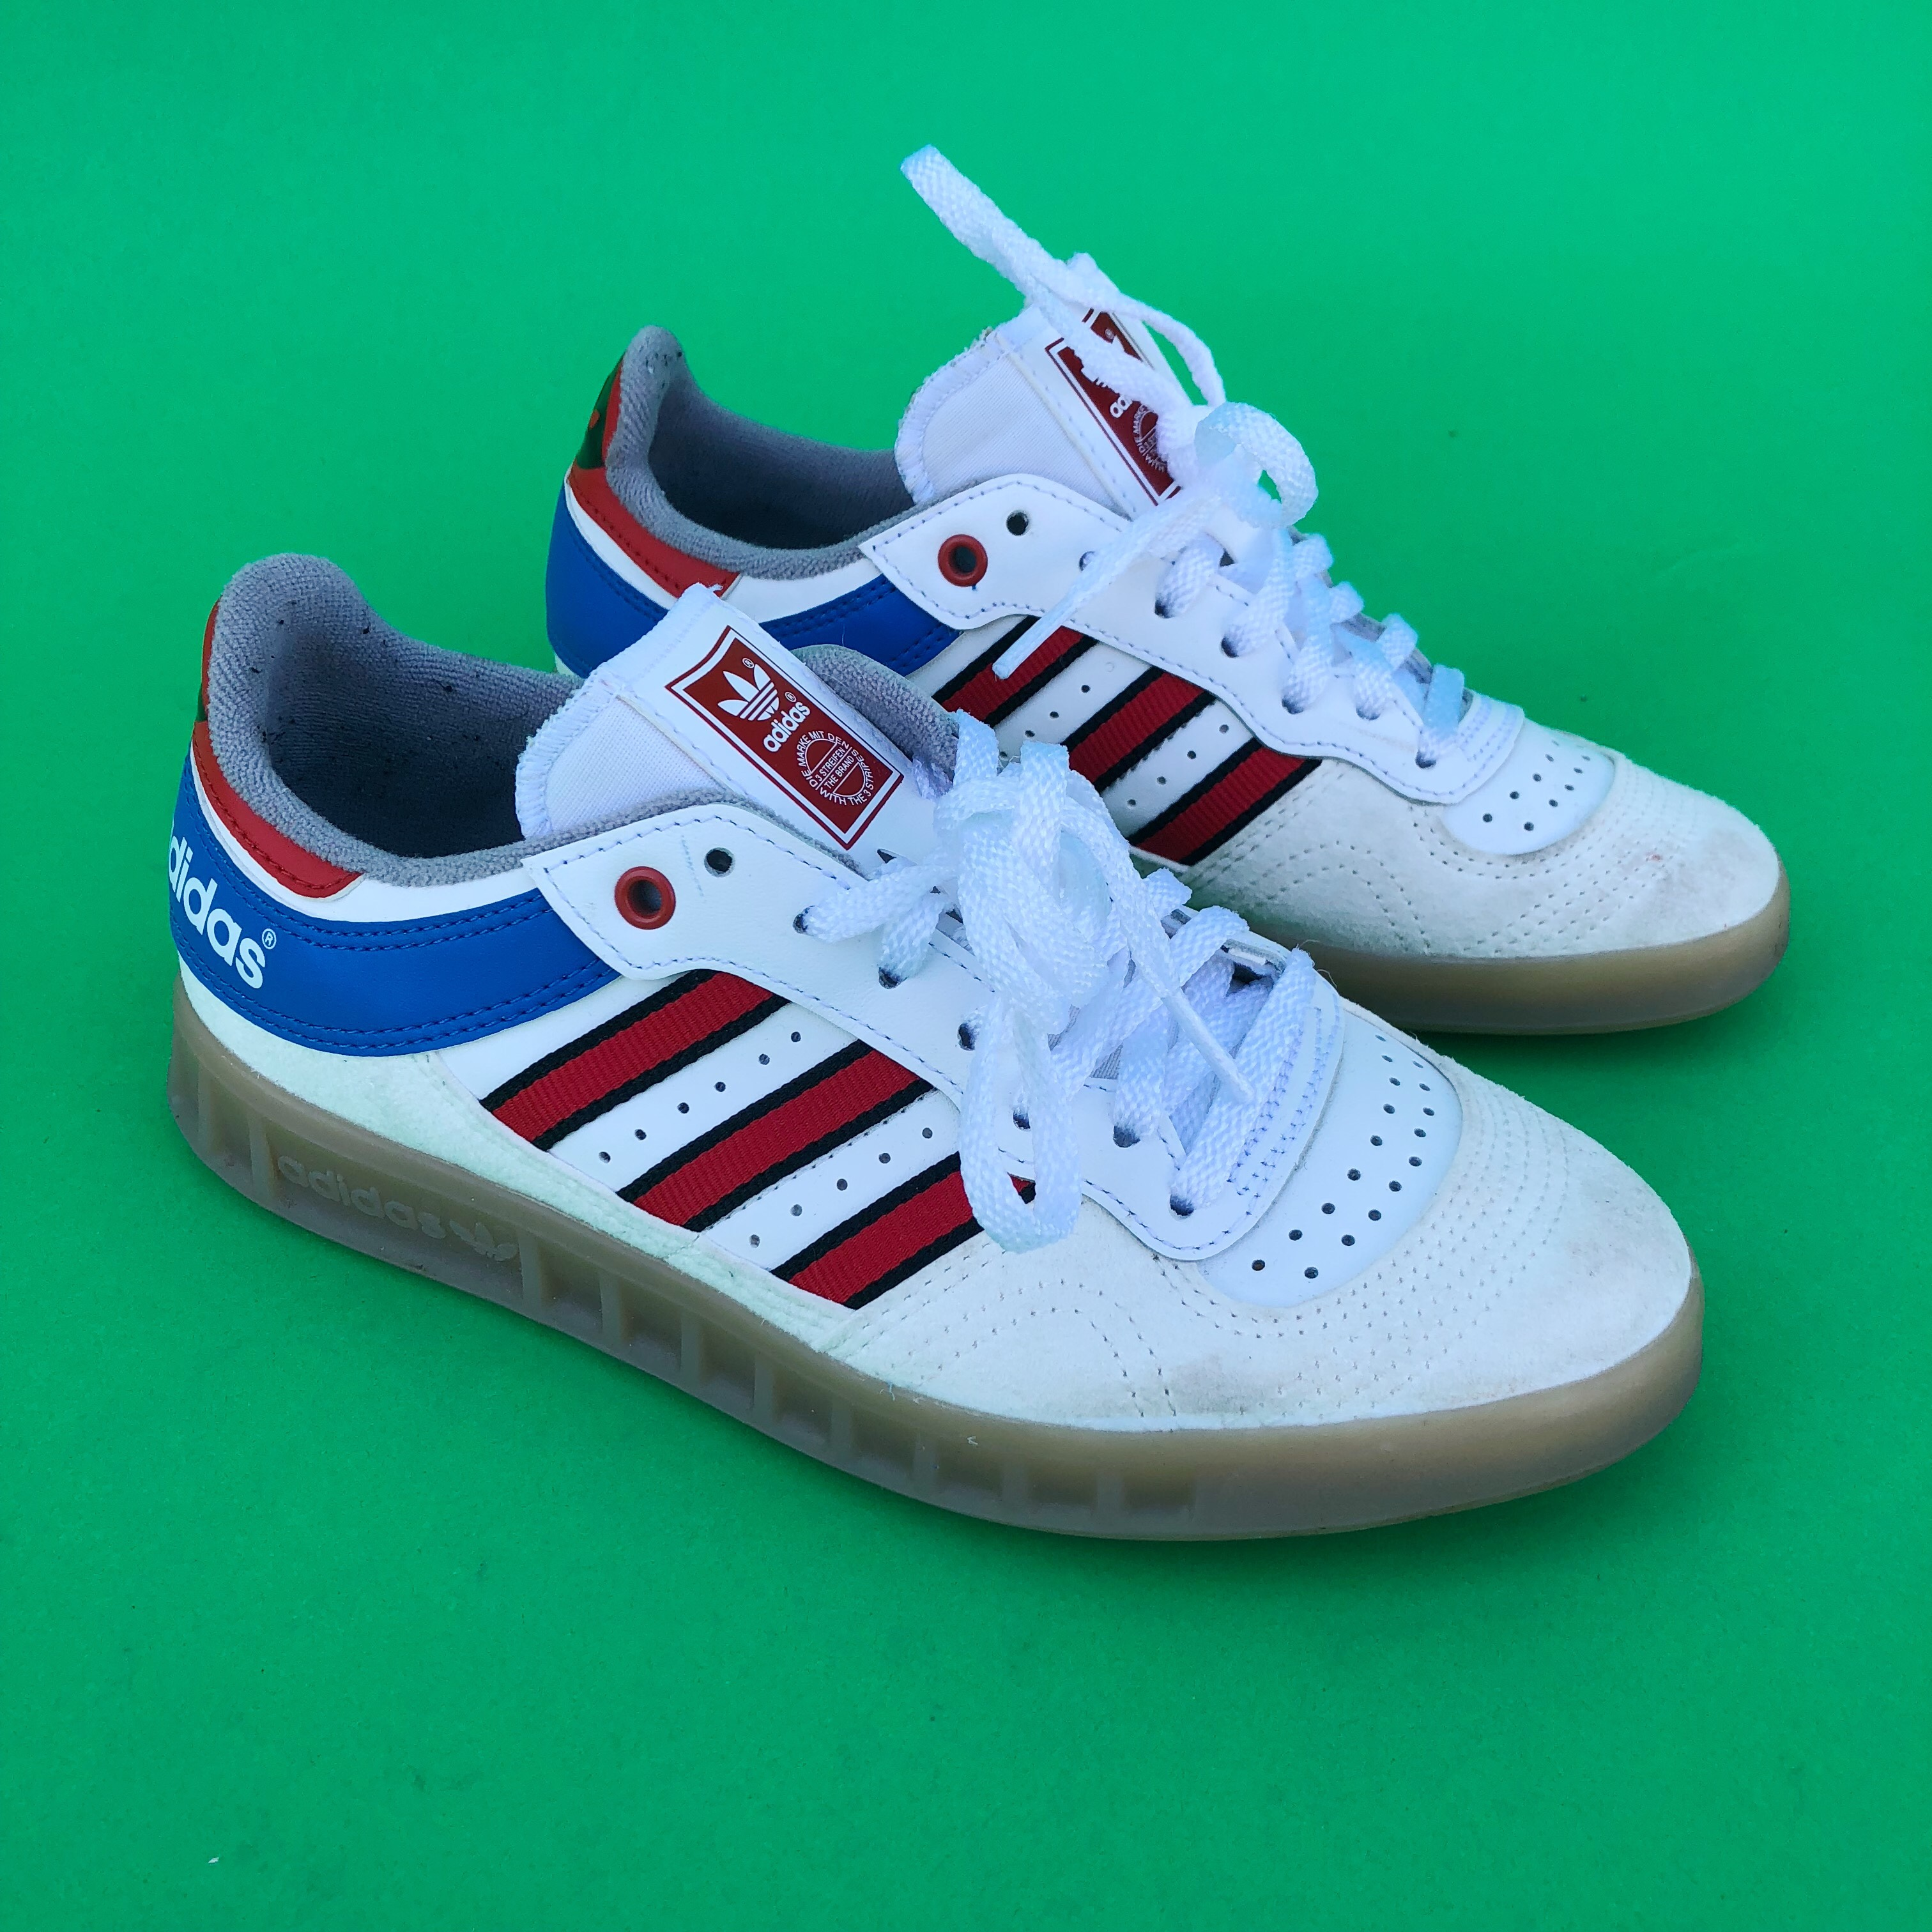 Adidas trainers. Red, white, blue